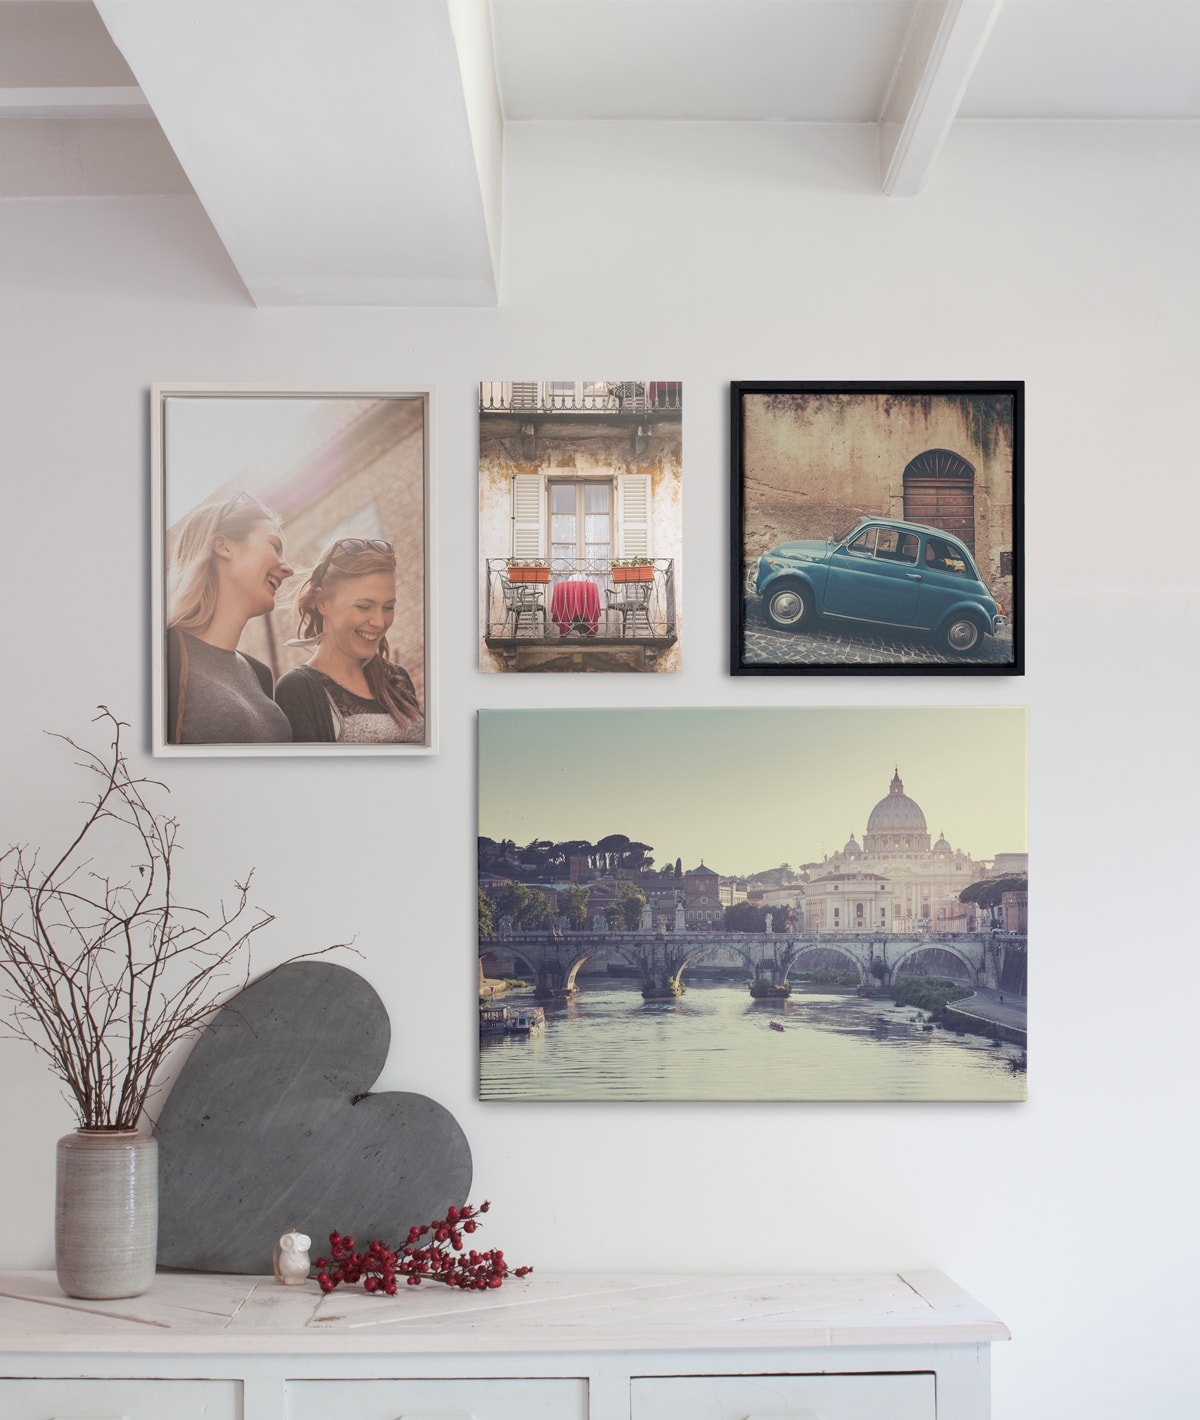 creative-ways-to-hang-your-wall-art-and-prints-play-with-scale